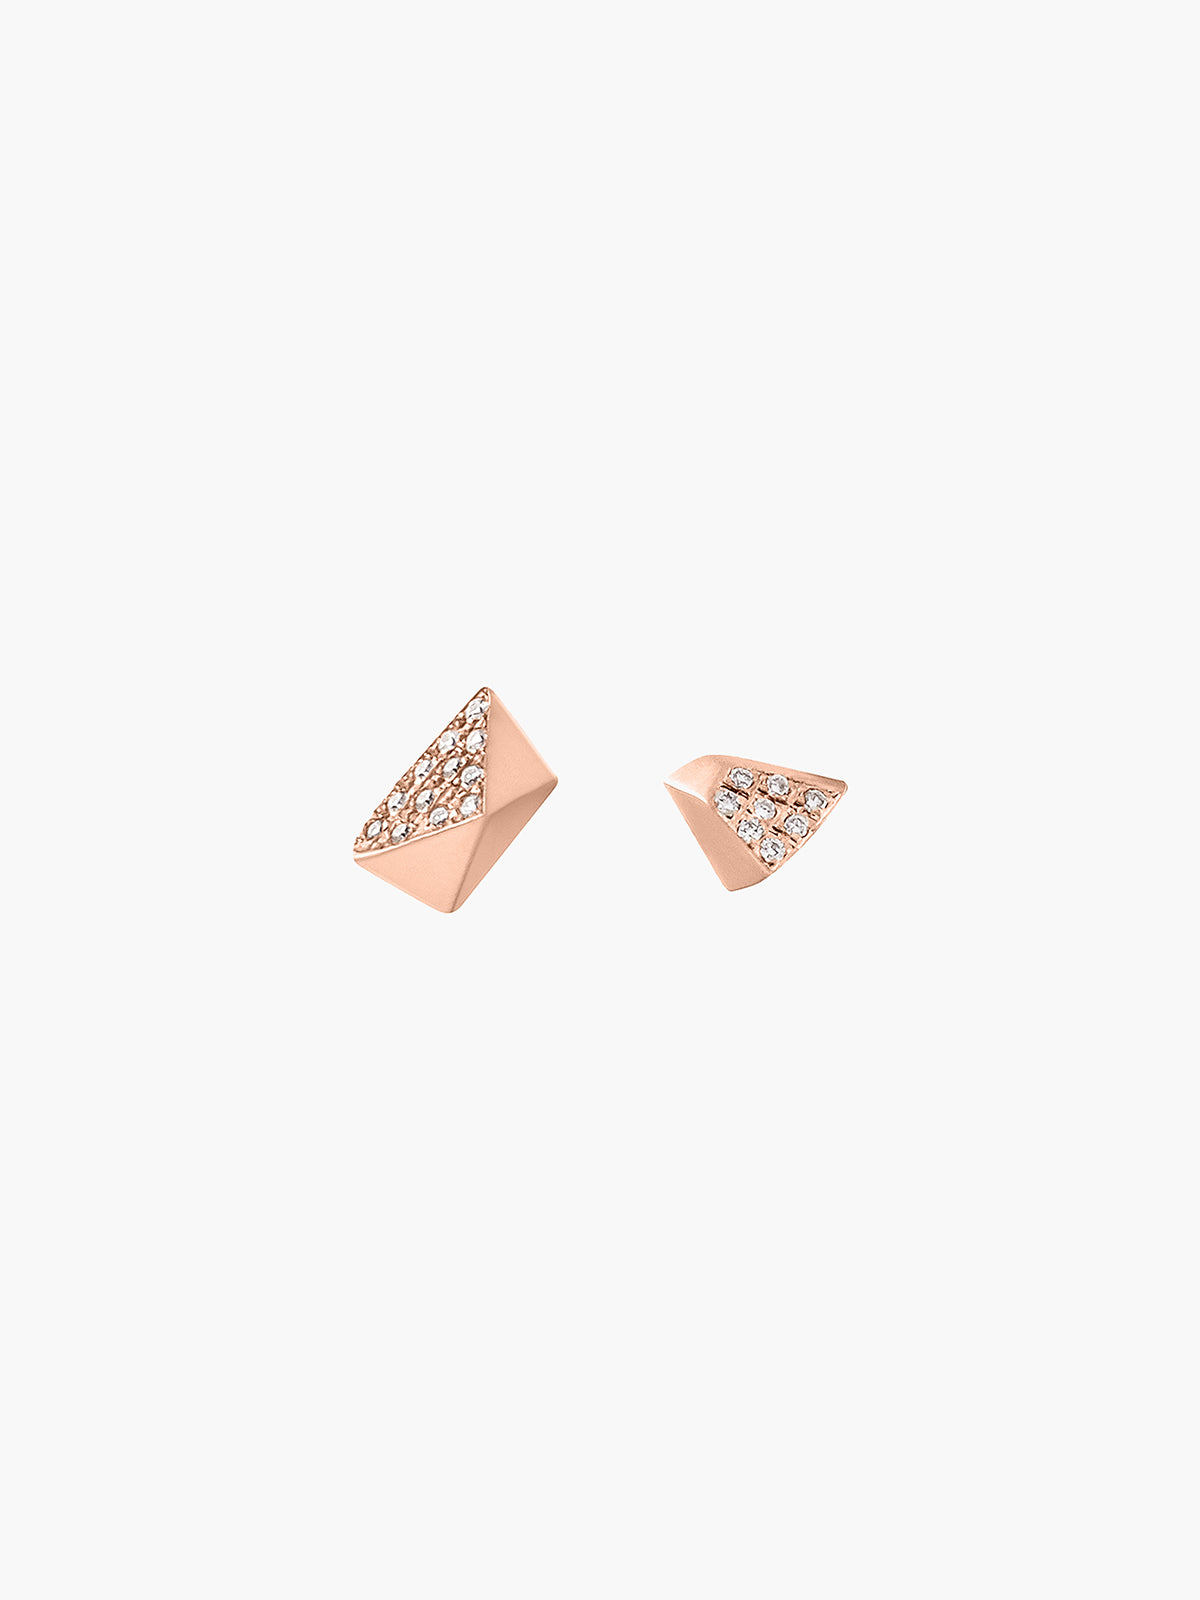 Diamond Mismatched Pyramid & Triangle Studs | Rose Gold